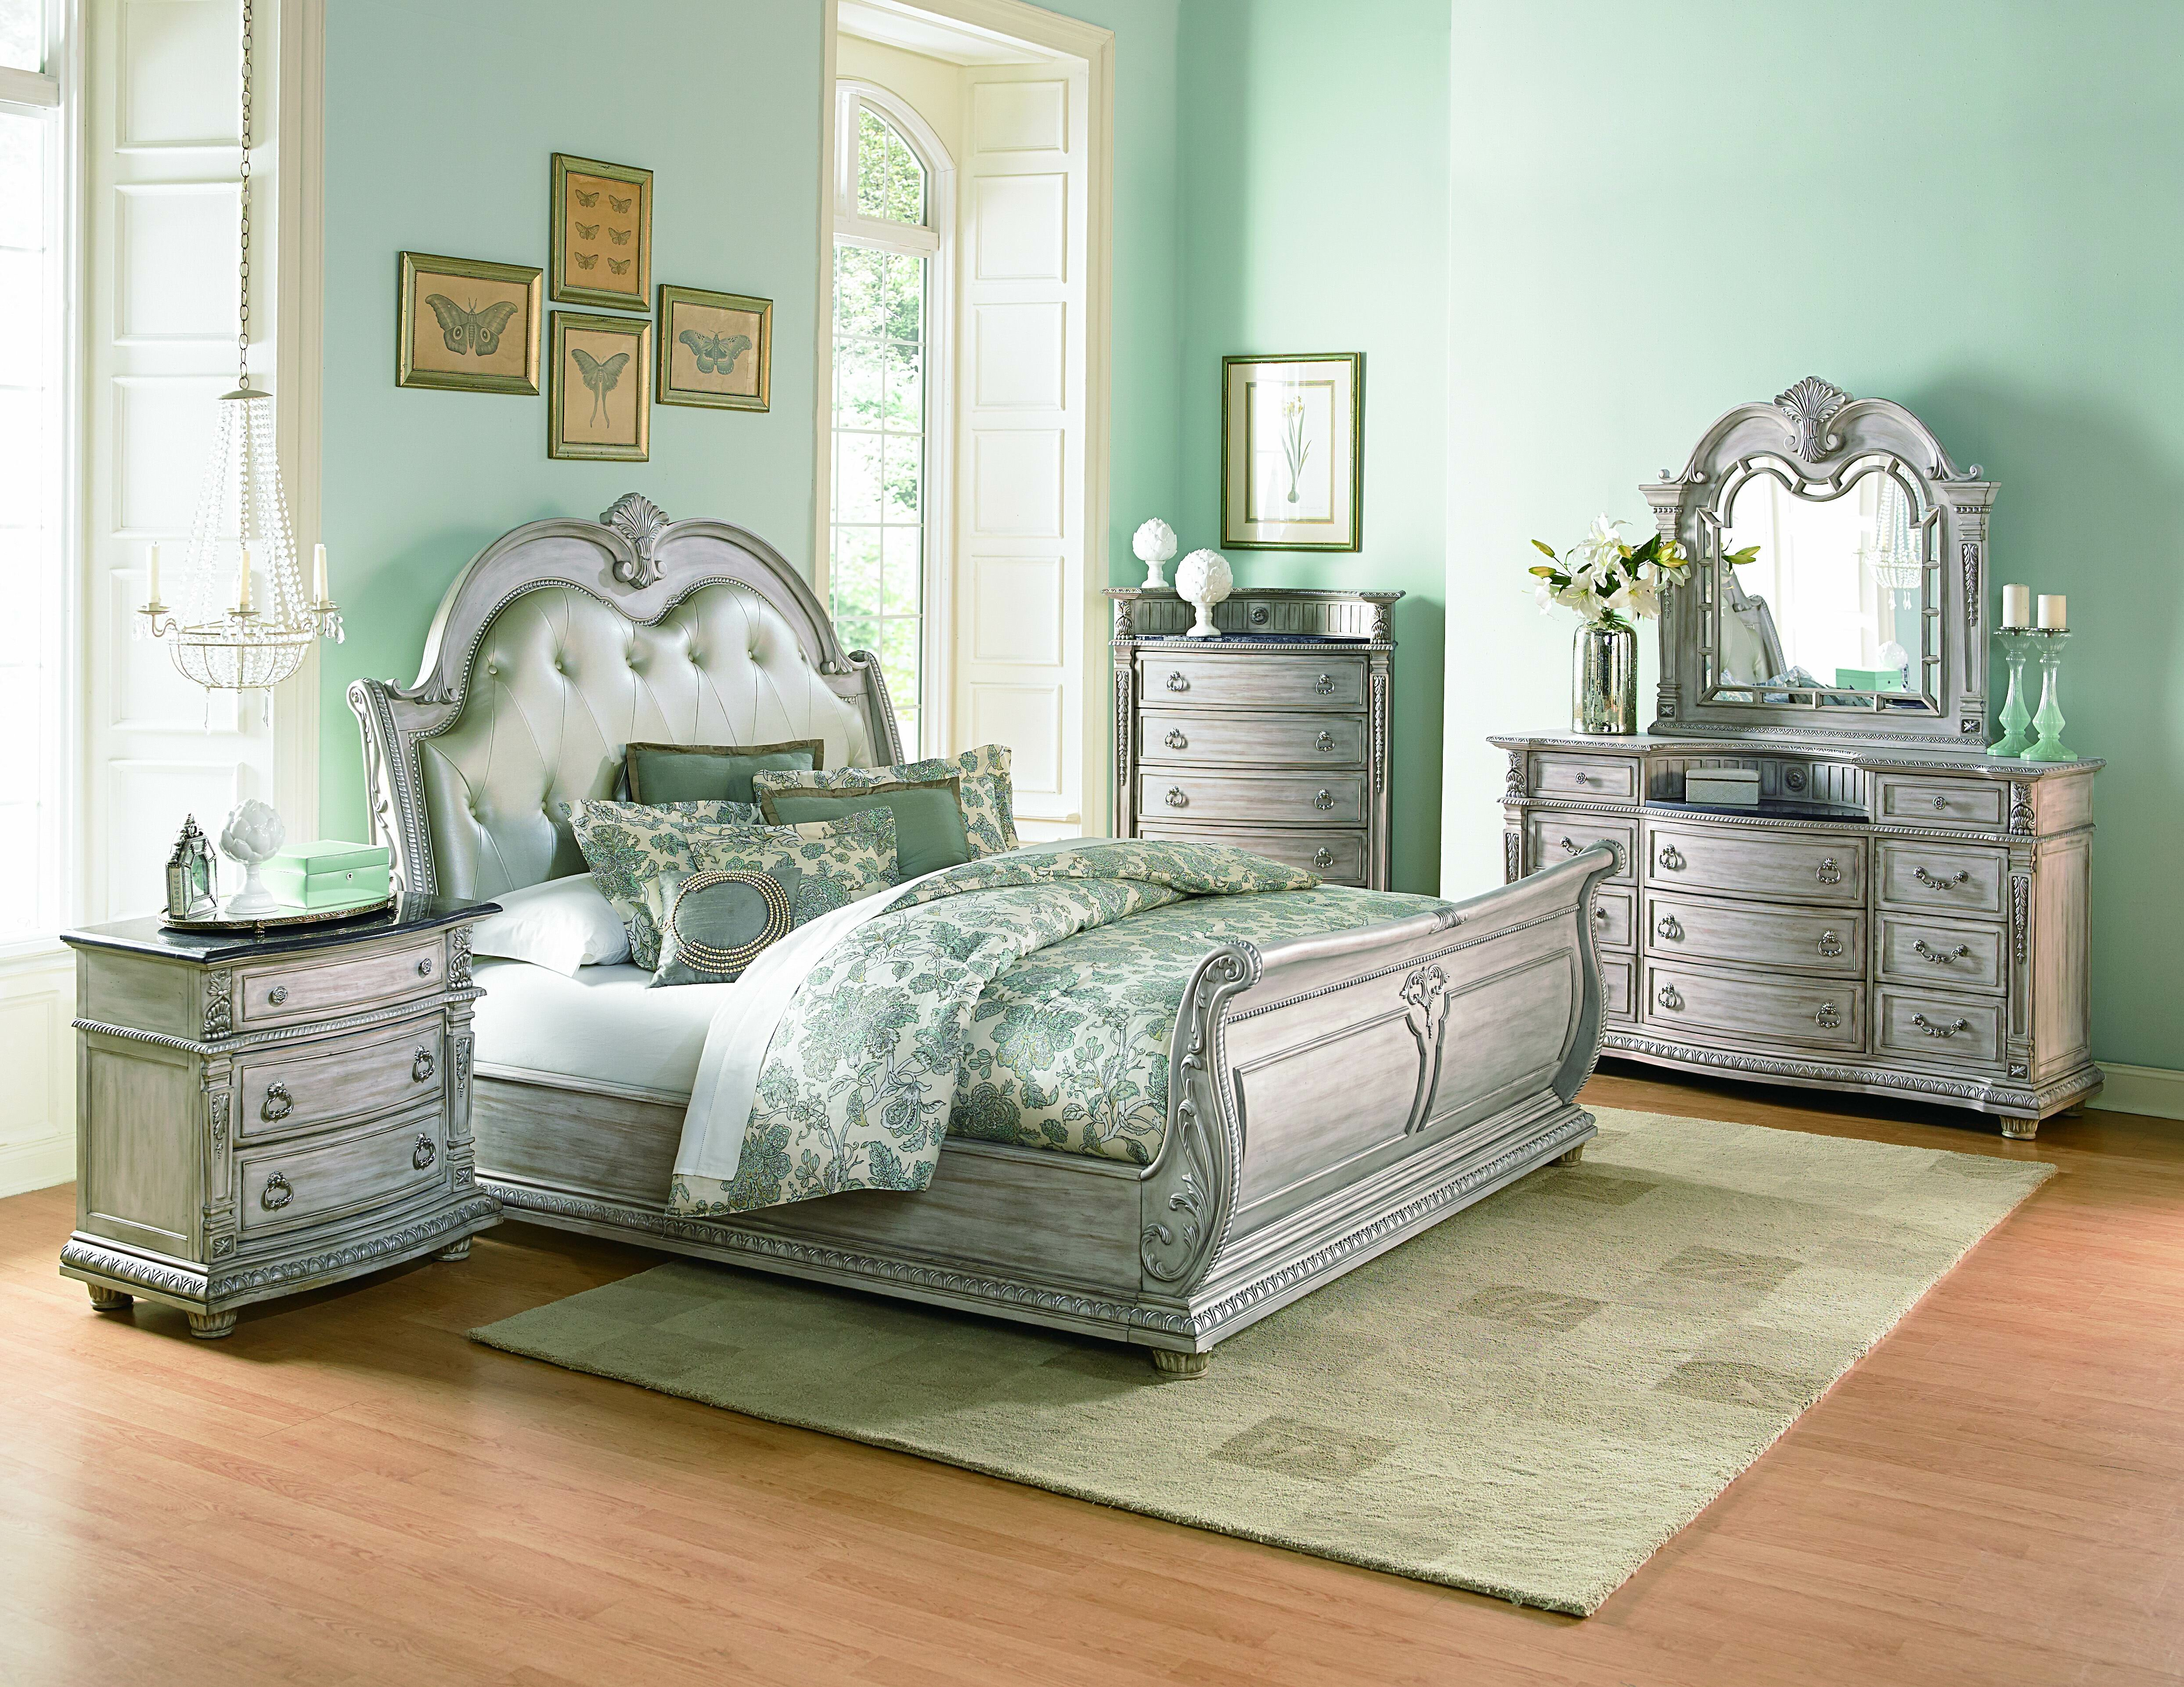 photo size headboard beds idea frame metal charming dream slay insider for upholstered your sleigh big ikea upho bedroom furniture king wooden bed gallery frames thomasville sets